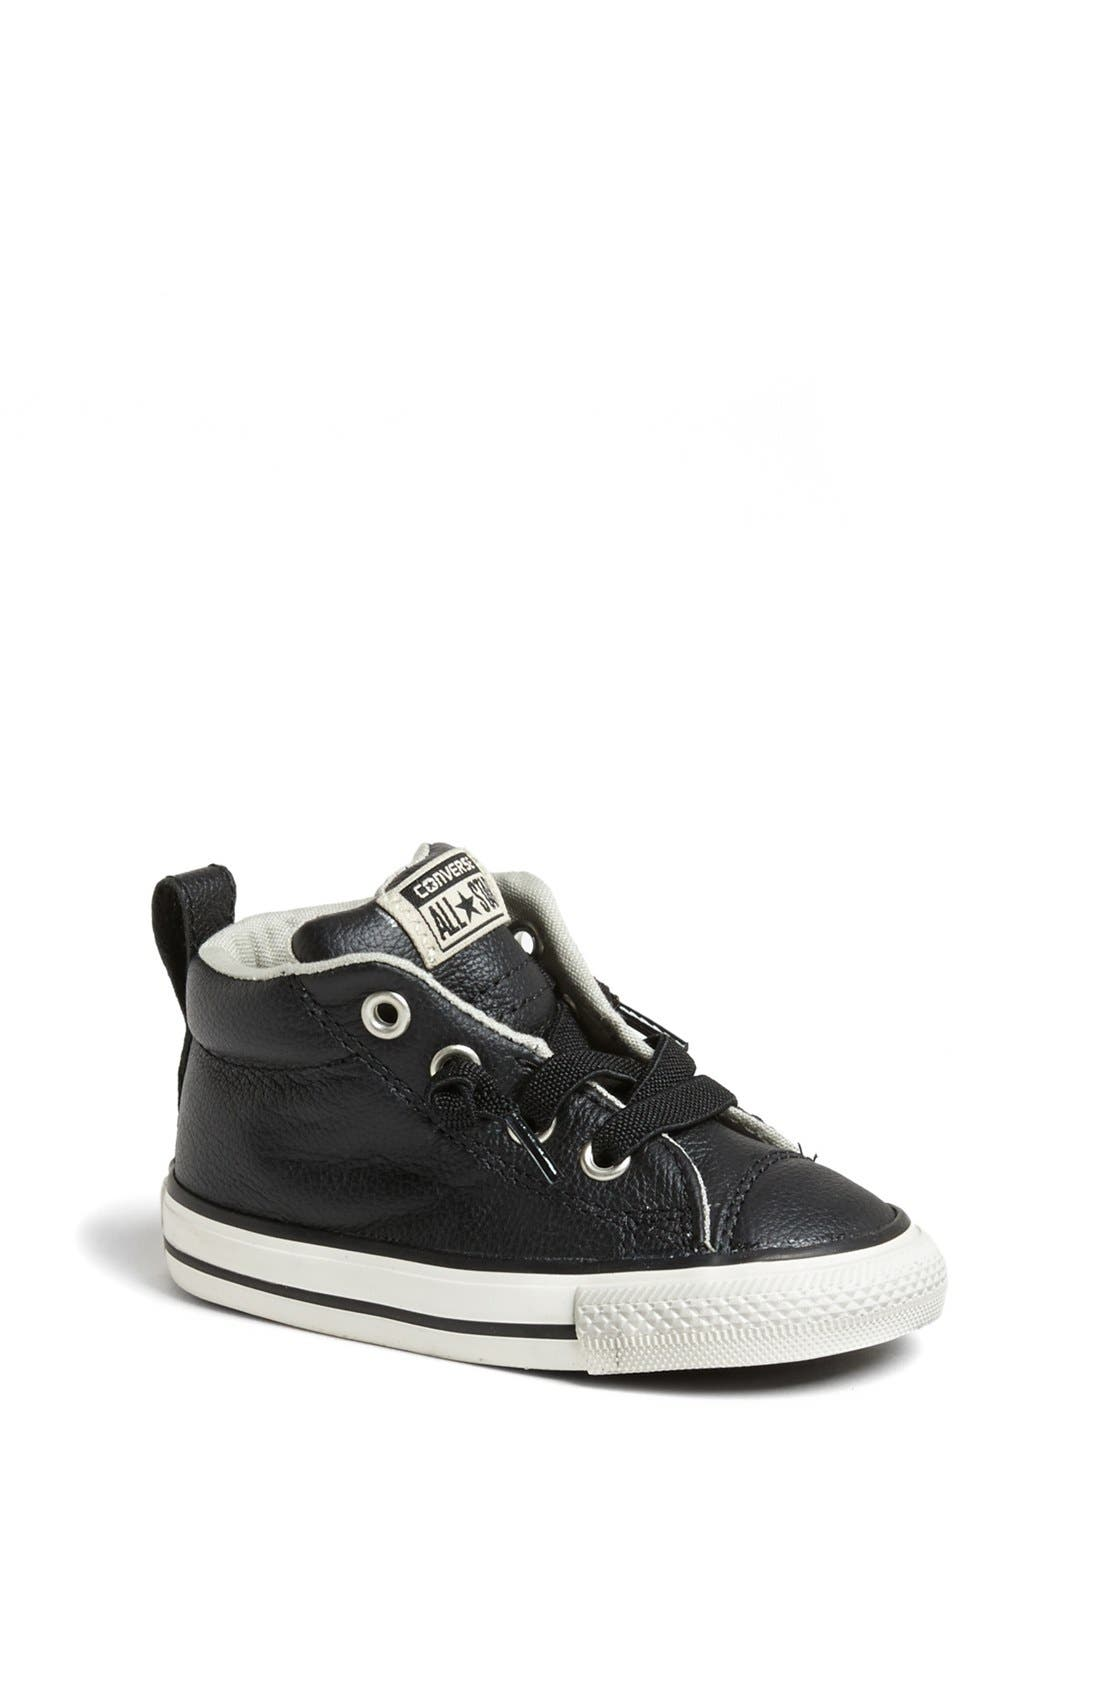 Chuck Taylor<sup>®</sup> All Star<sup>®</sup> 'CT AS Street' Leather Slip-On Sneaker,                         Main,                         color, Black/ Tidal Foam